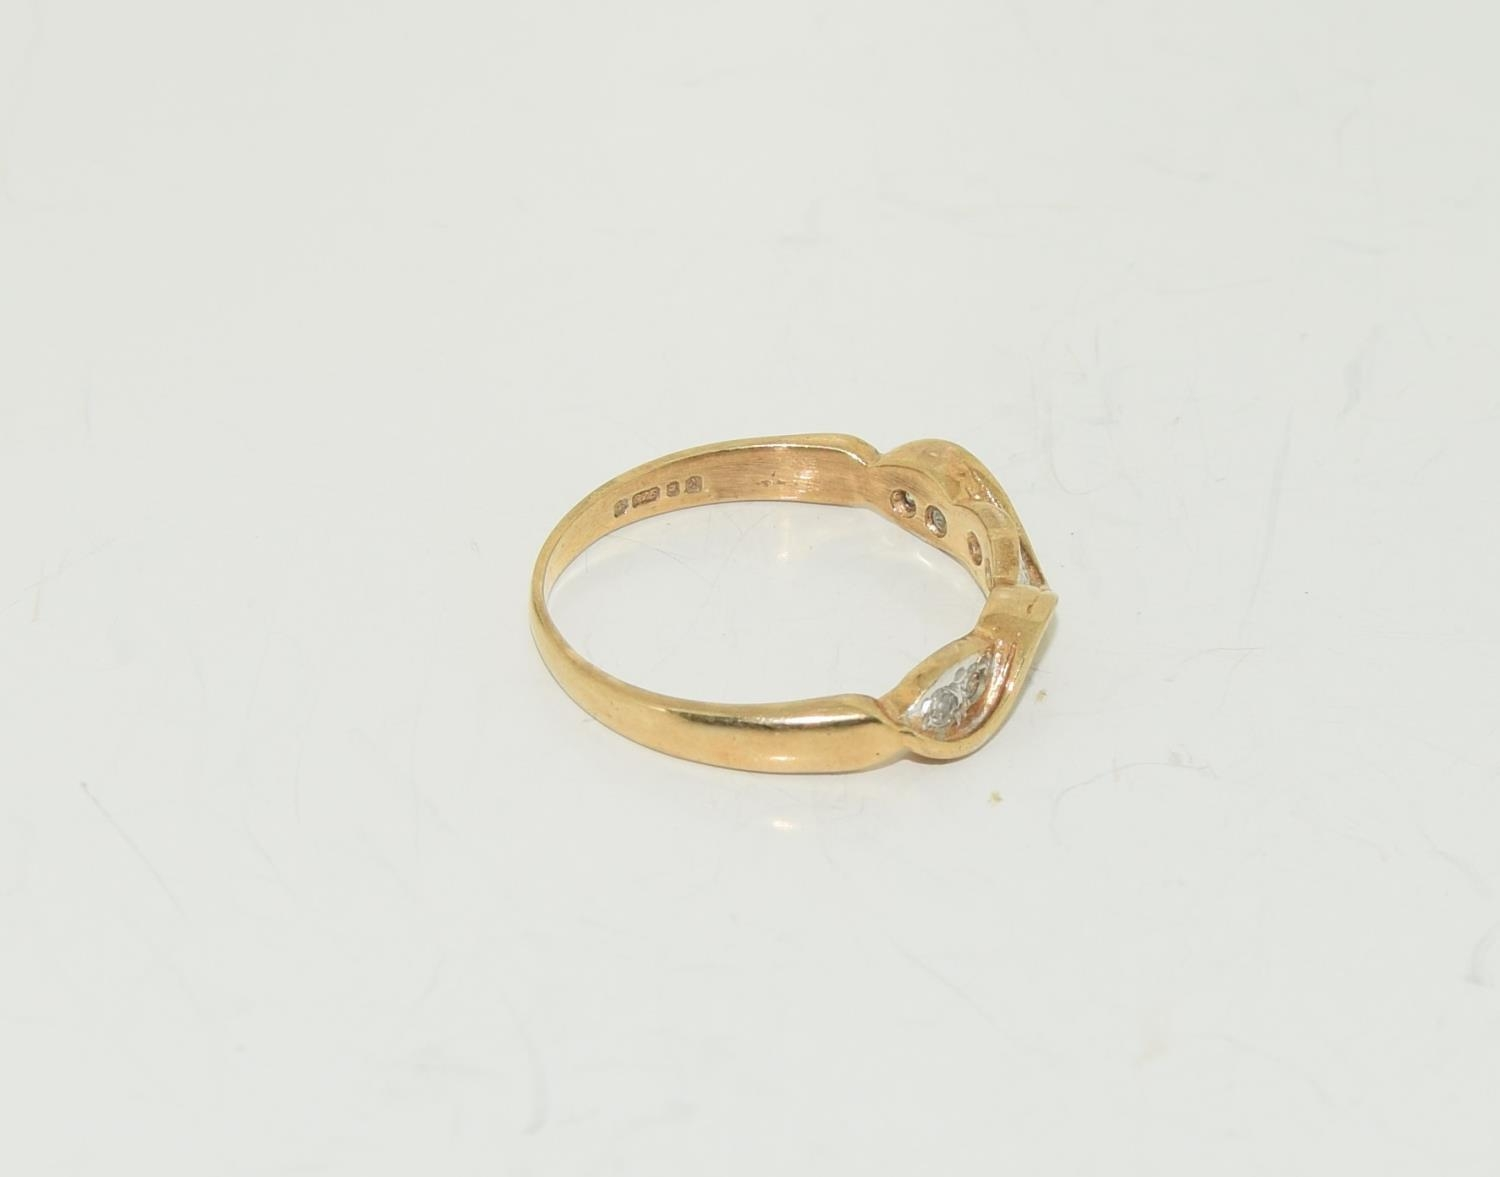 9ct gold half eternity ring. Size K - Image 2 of 3